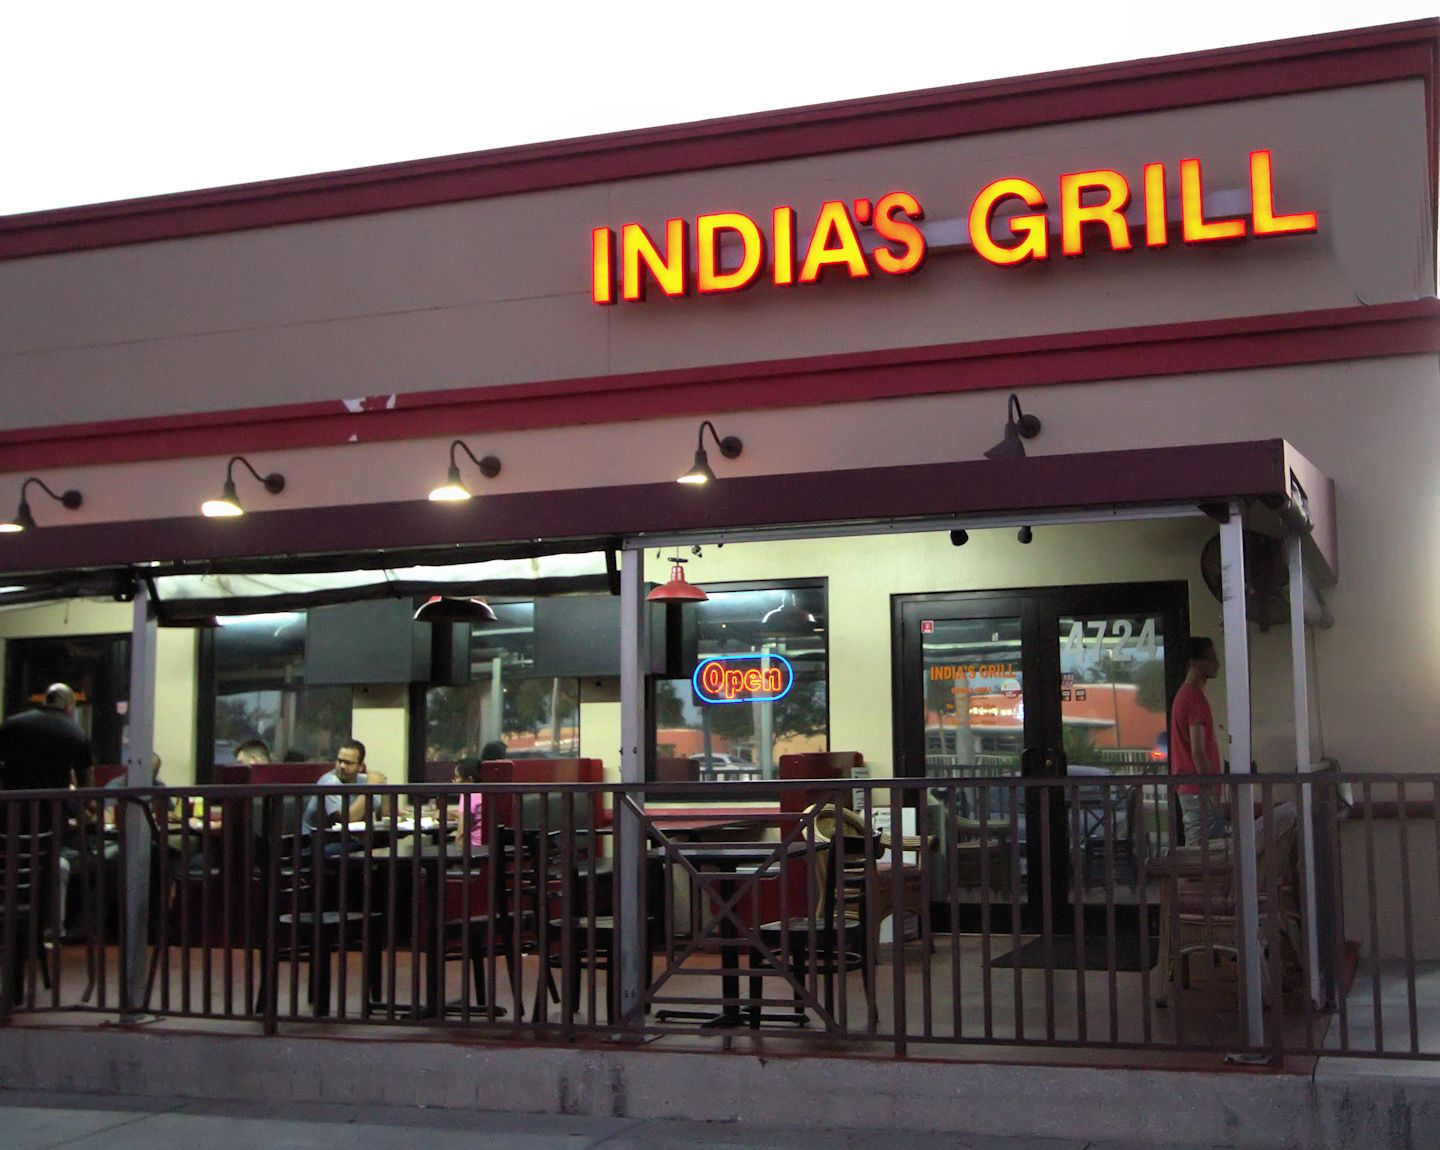 Dinner at India's Grill (With images) Grilling, Dinner